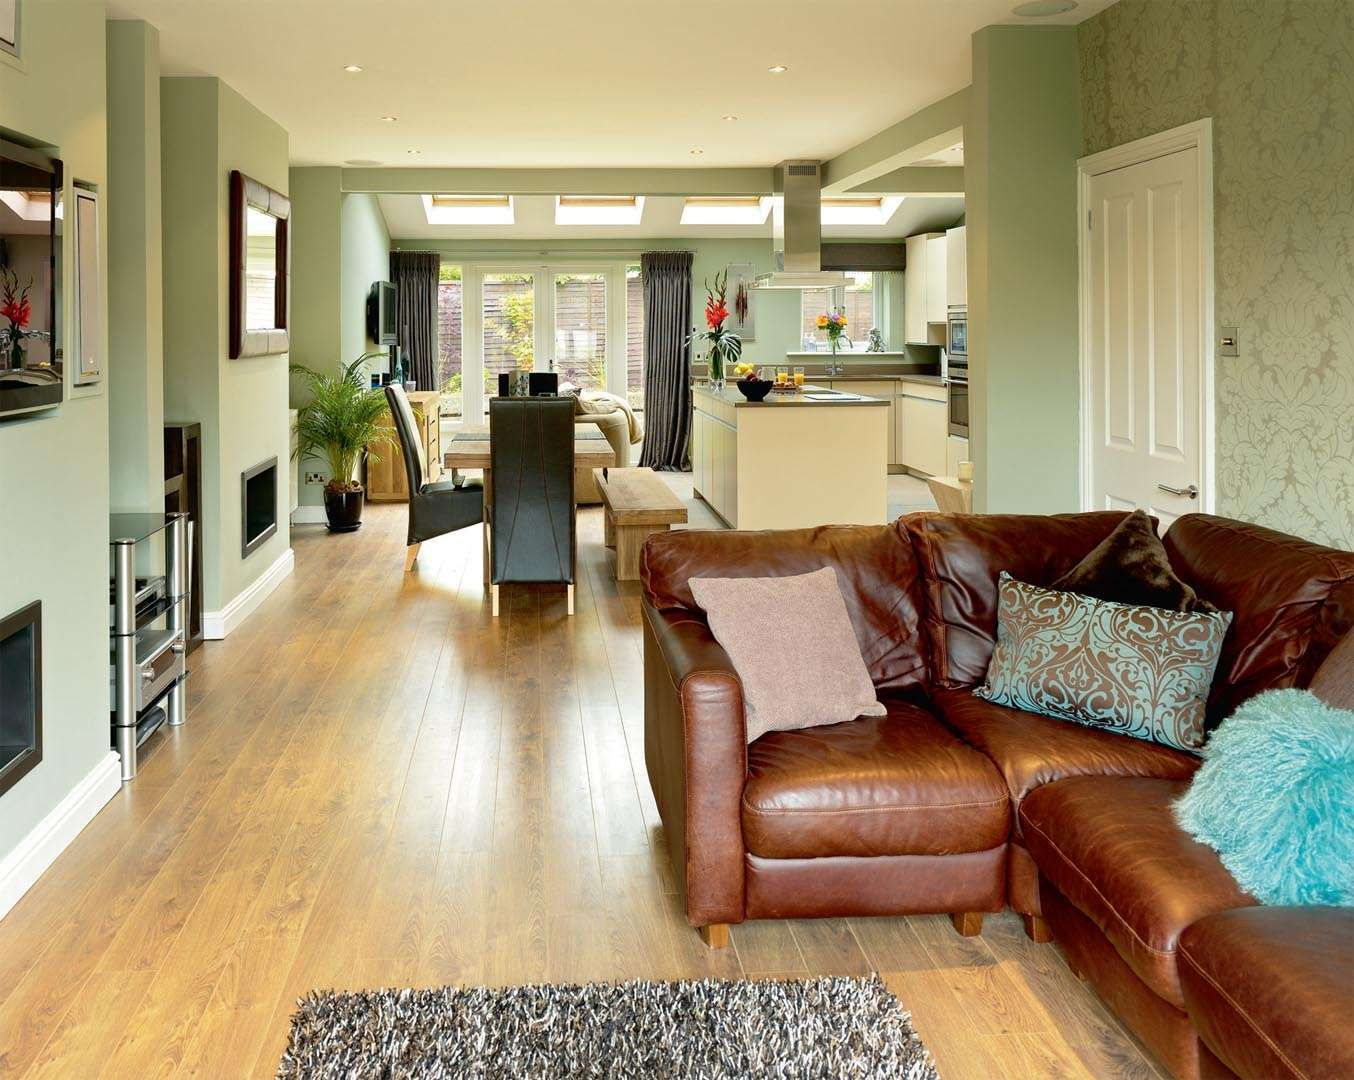 Similar Layout To Current Rooms With Rear Extension Added